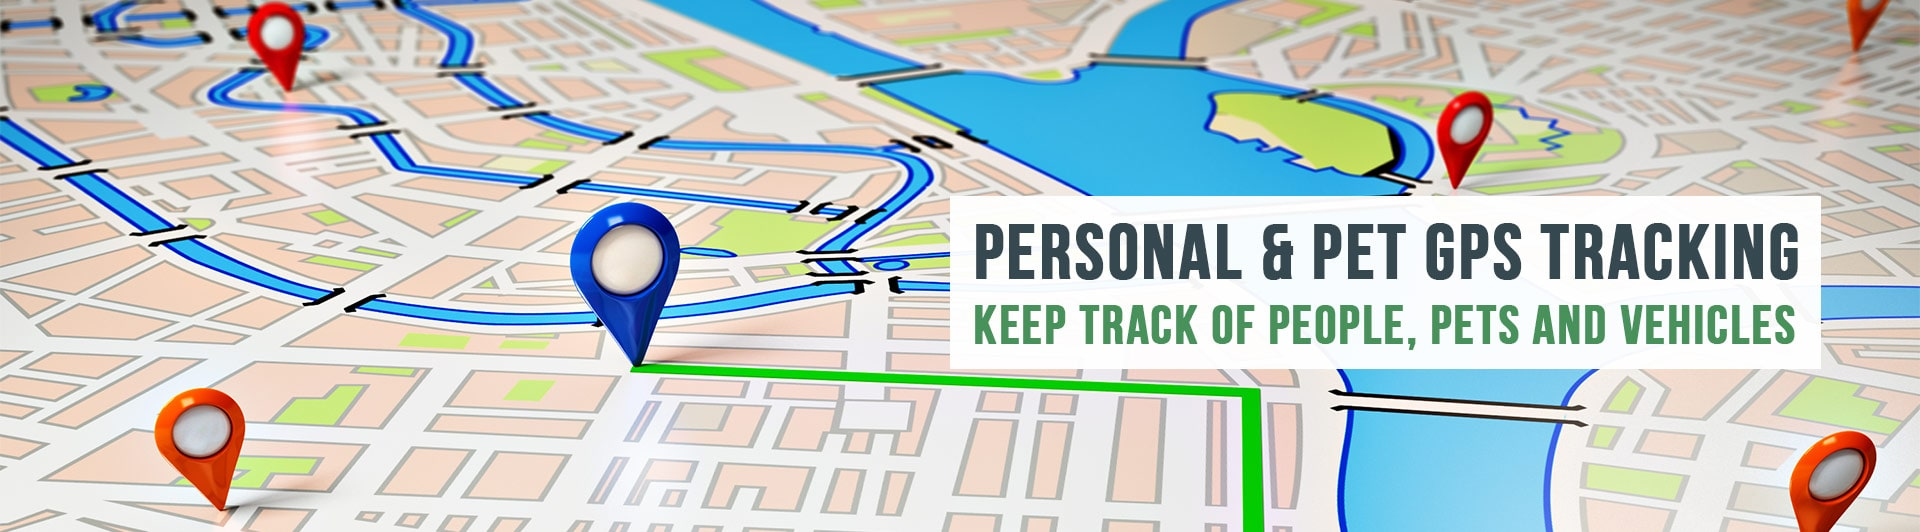 Personal And Pet GPS Tracking